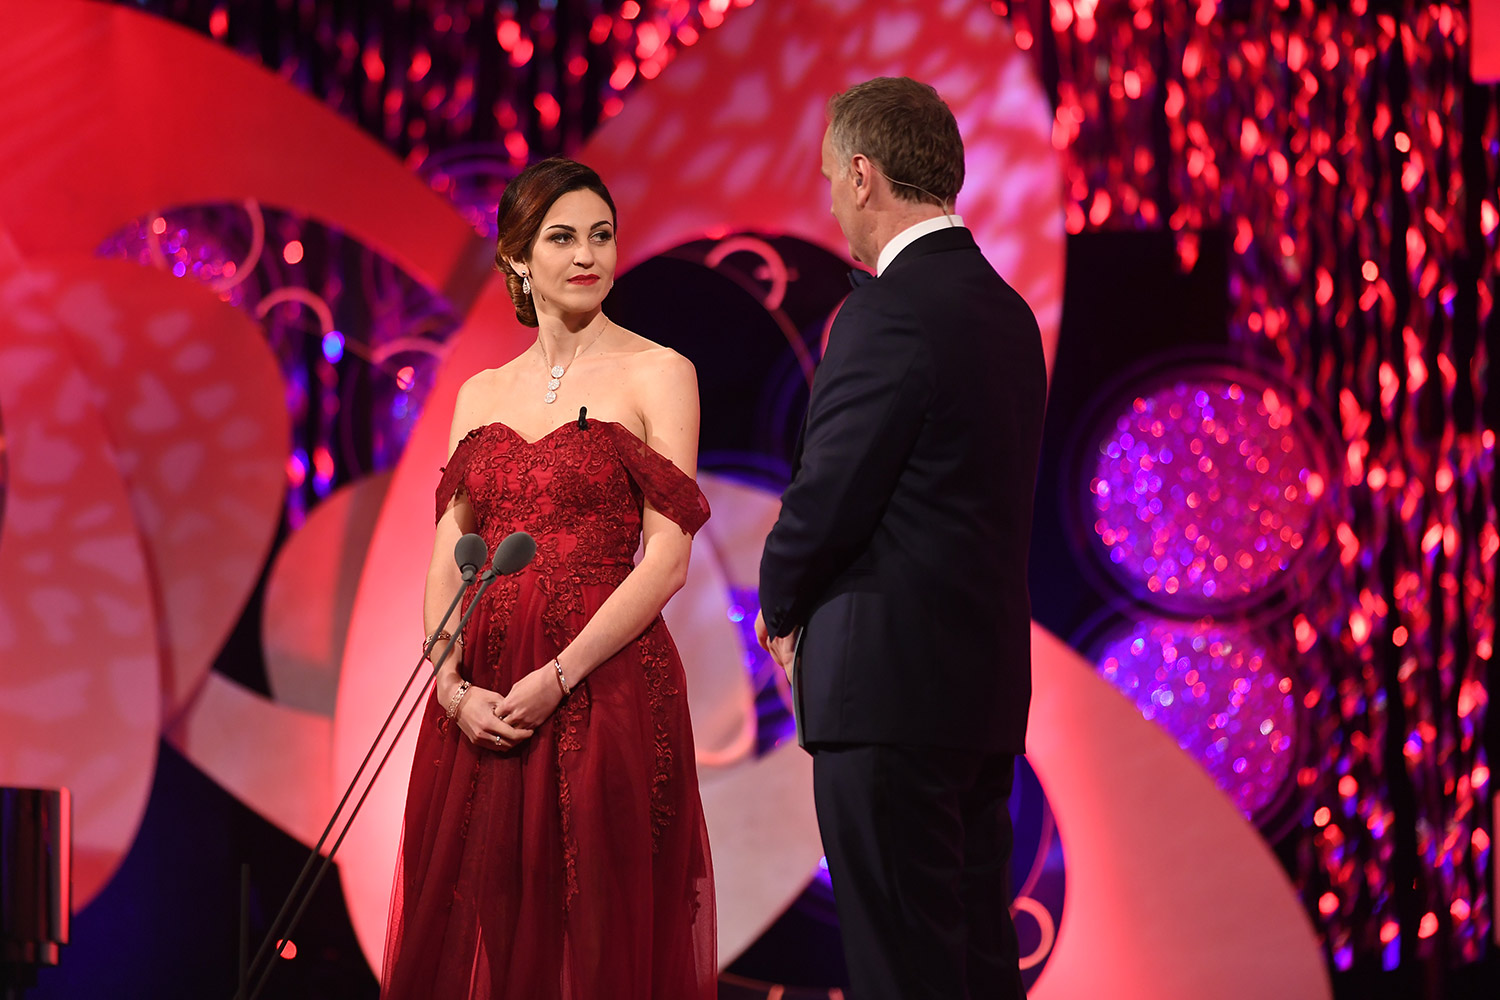 Brianna Parkins on stage with Daithi O'Sé at the Rose Of Tralee.